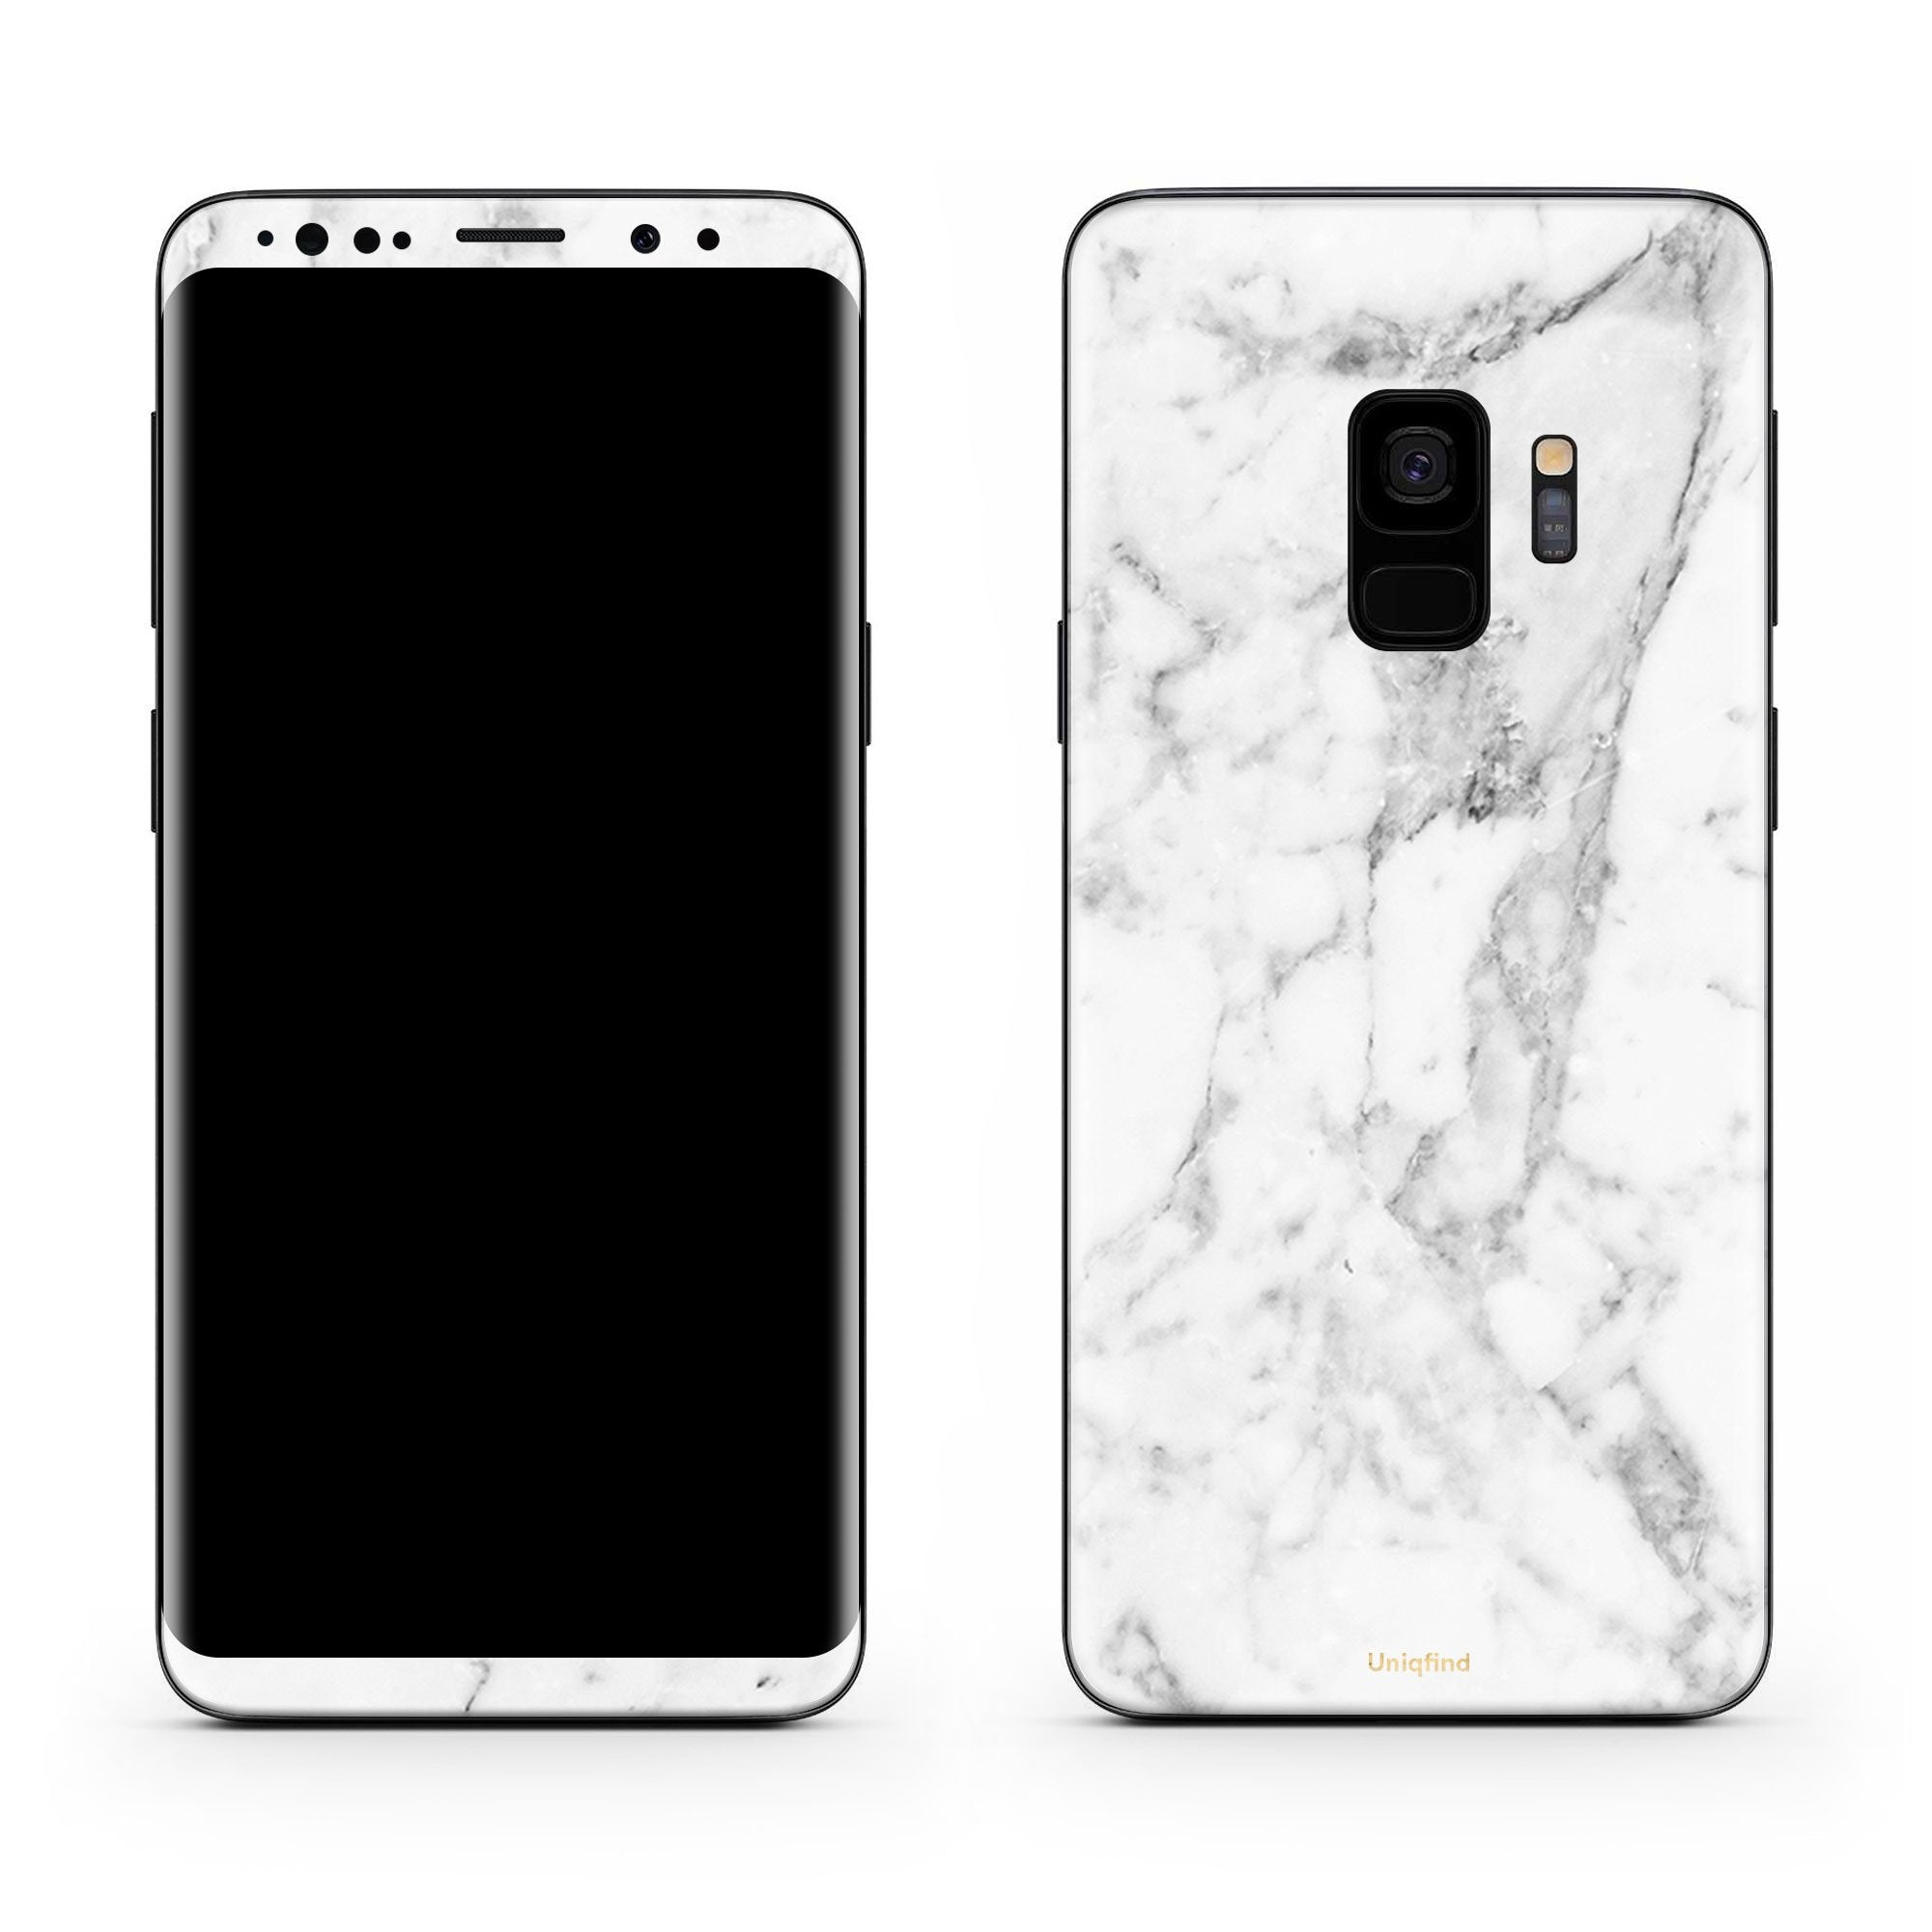 White Marble Galaxy S9 Plus Skin + Case